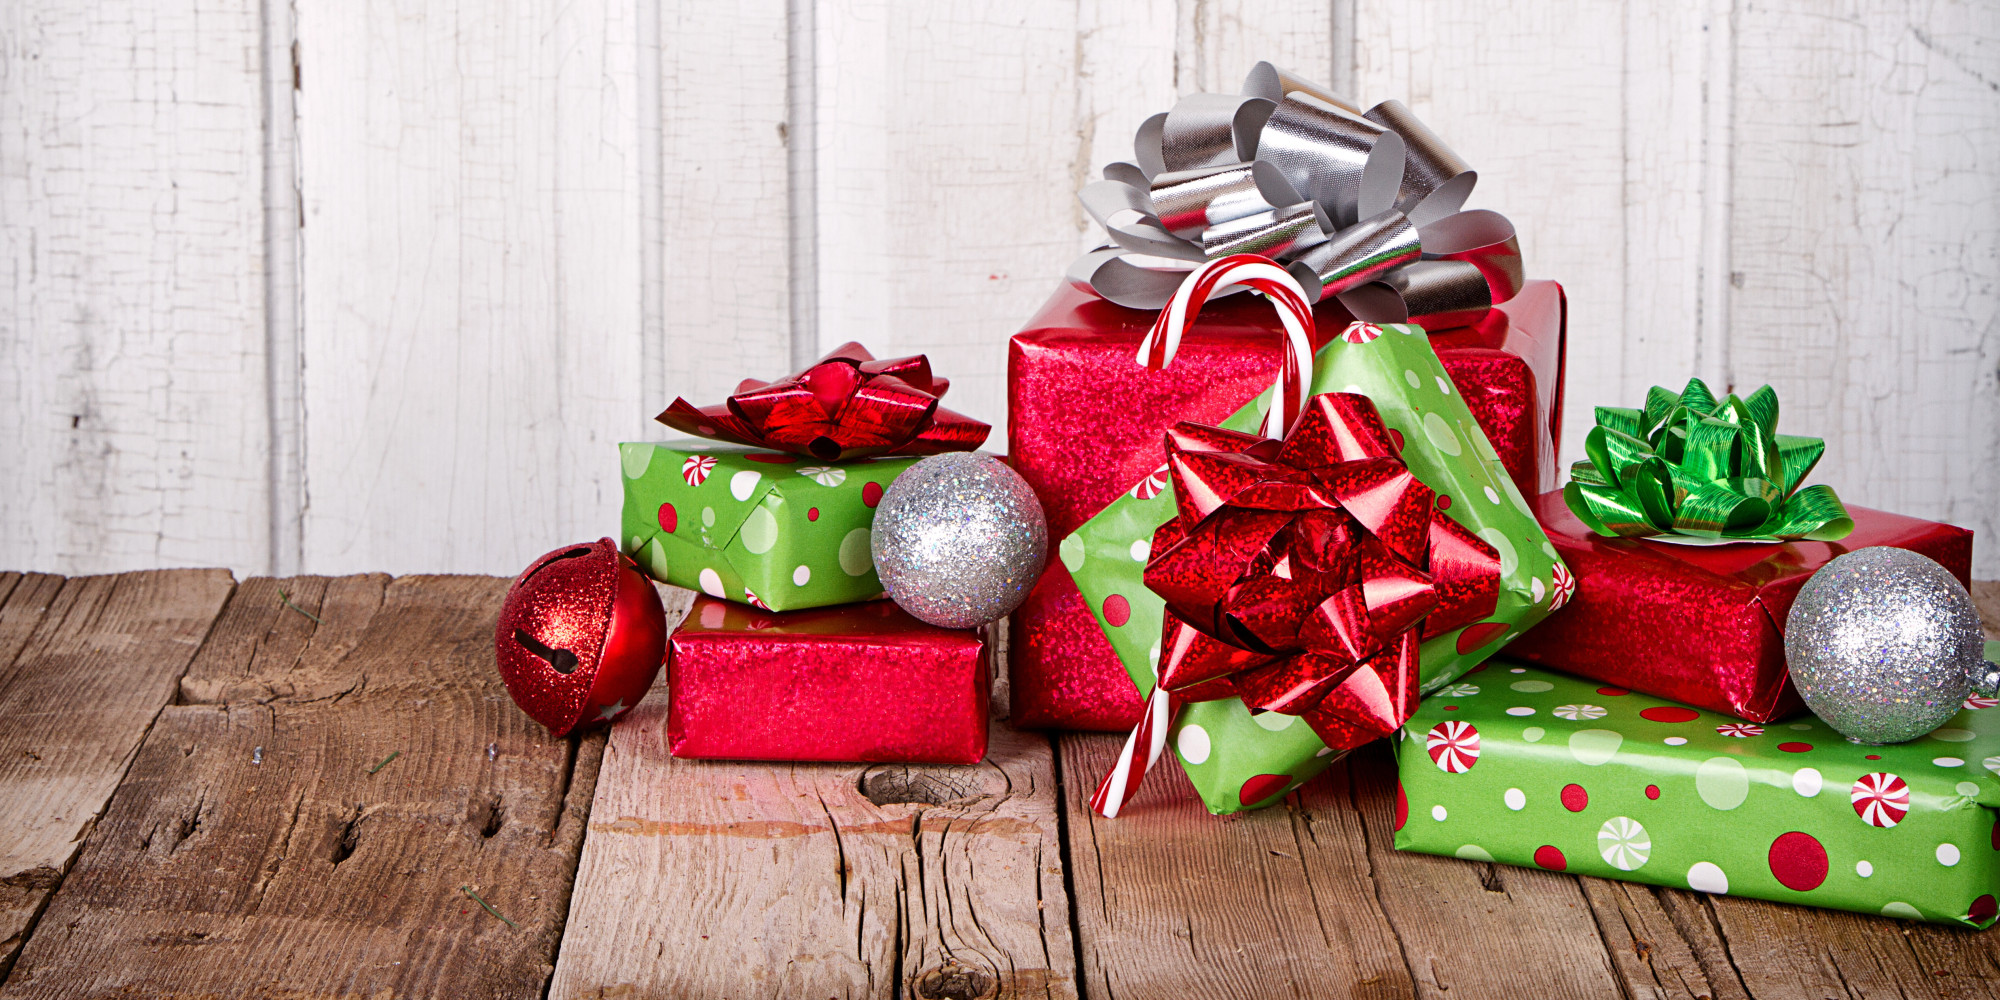 Practical Gifts For Christmas ✓ Inspirations of Christmas Gift